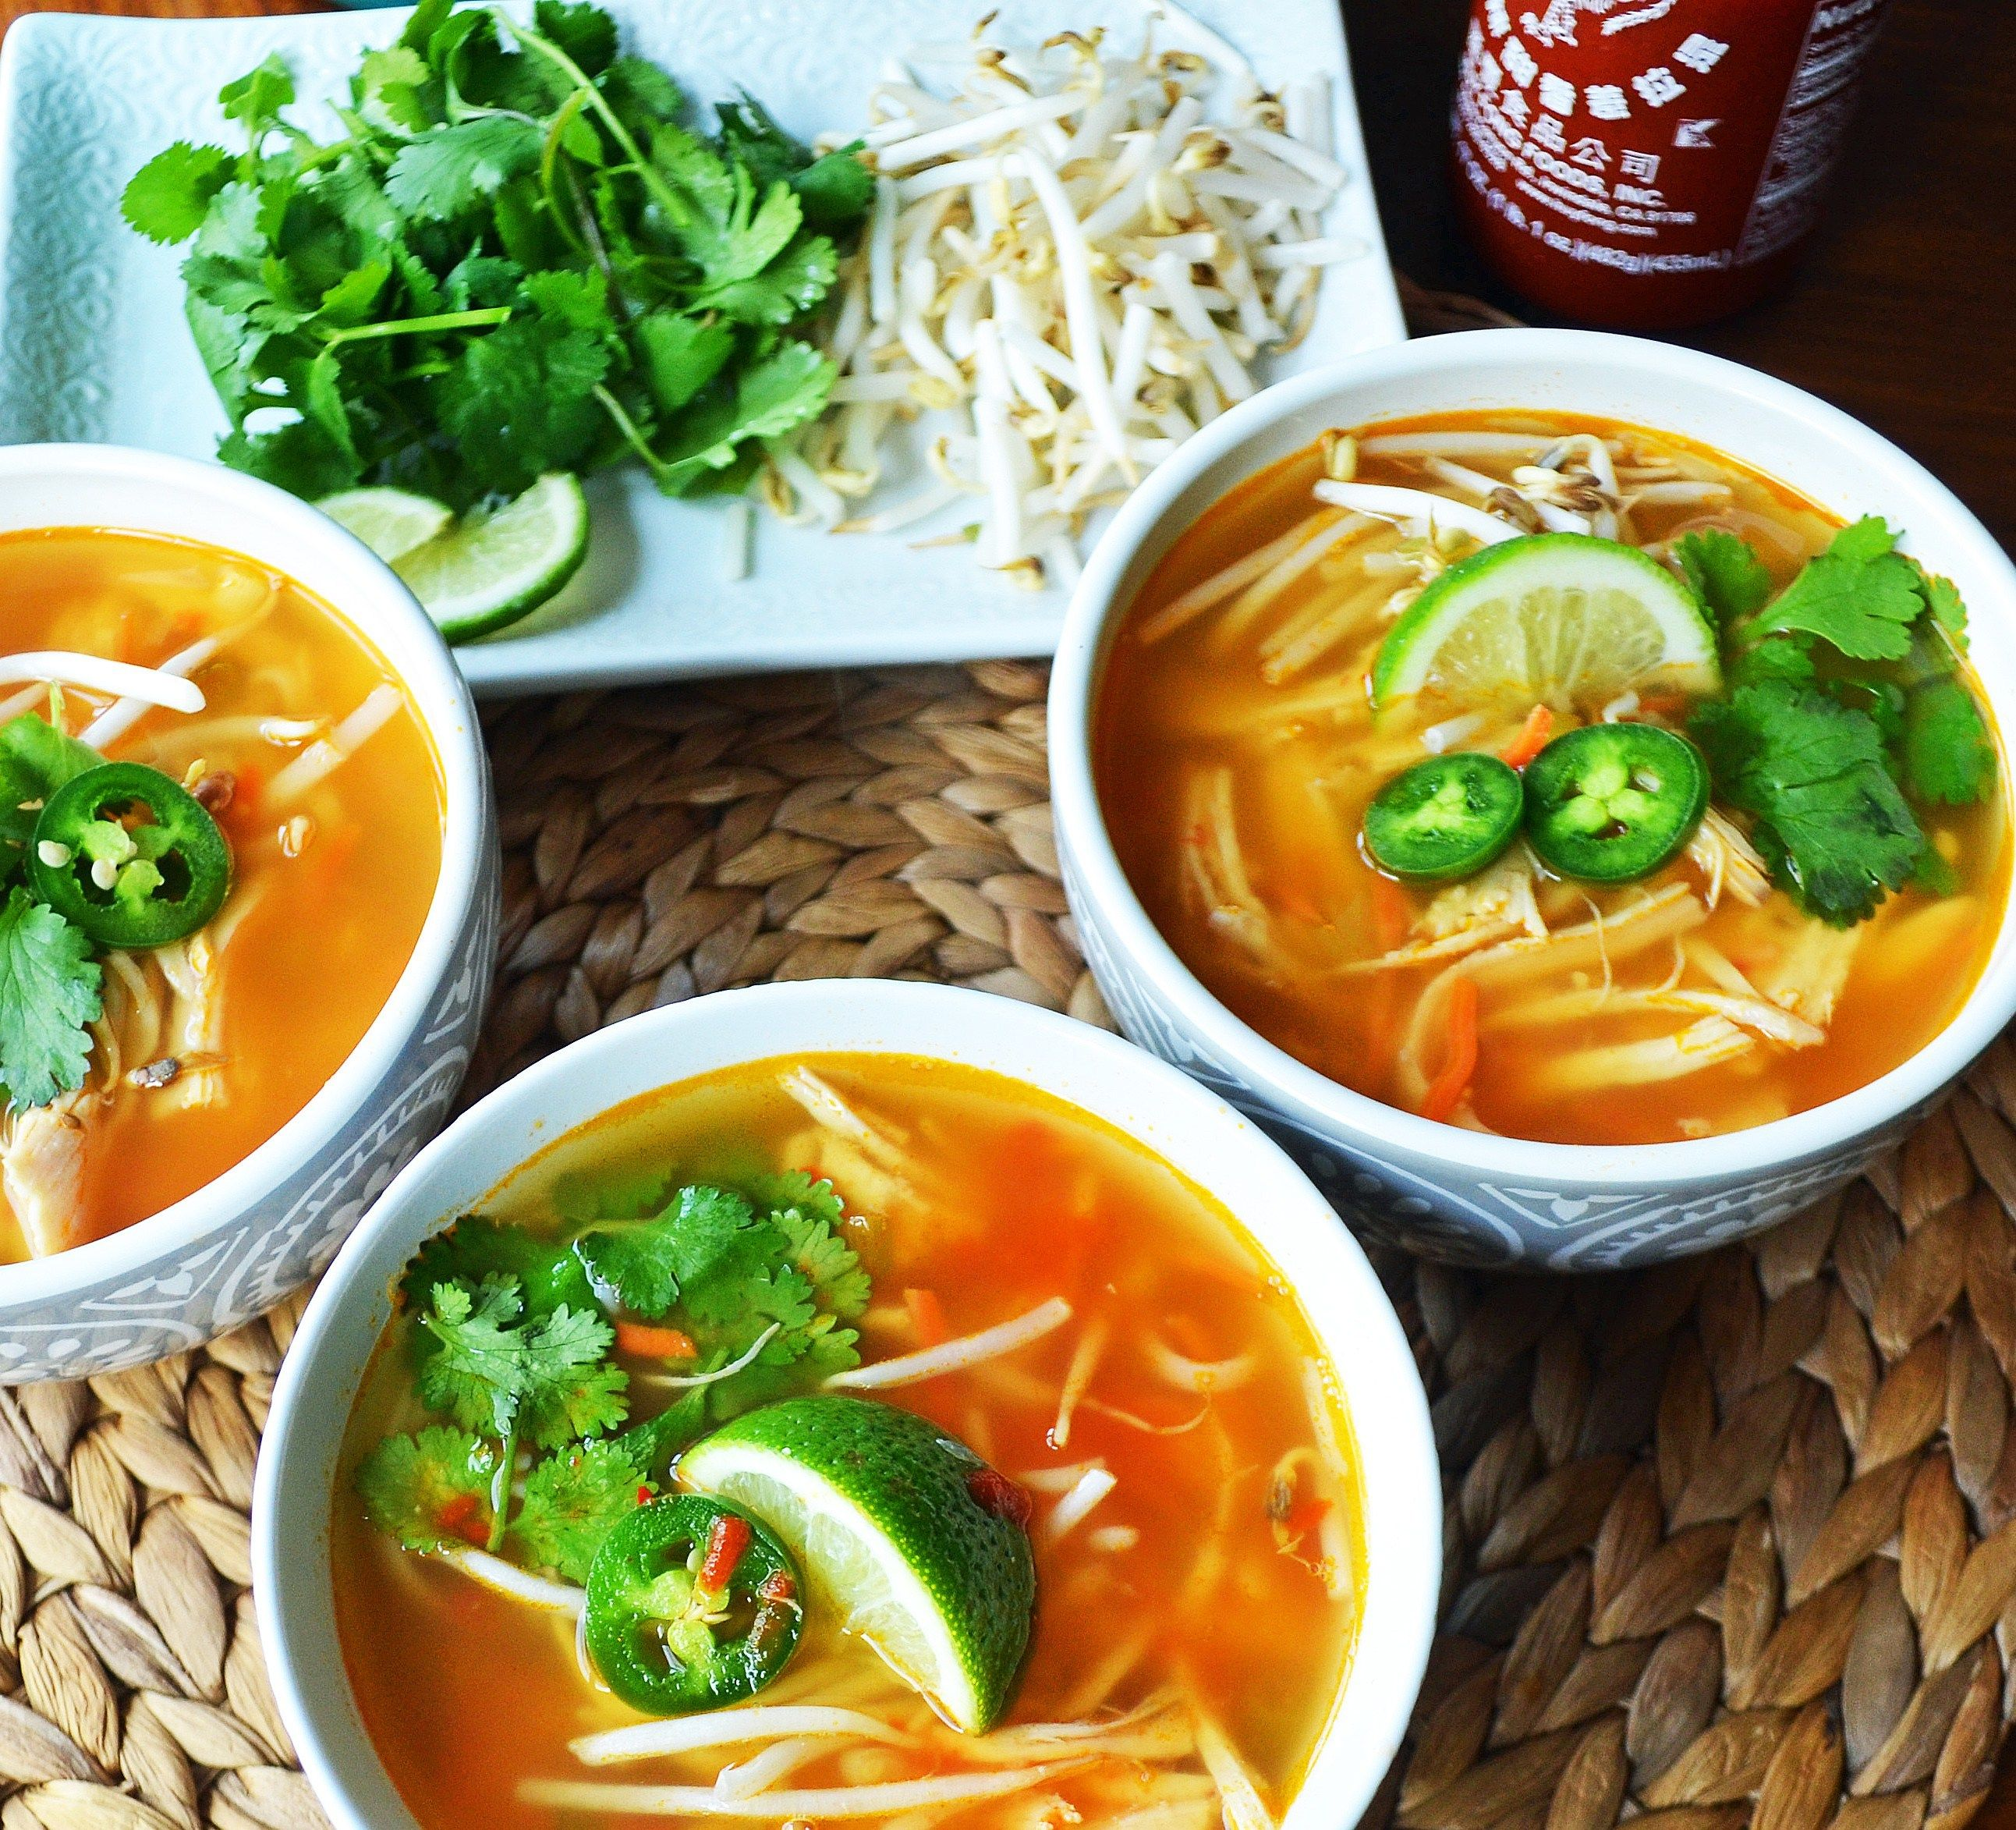 Dinner Ideas With Chicken Stock: Phony Pho Chicken Broth Bowls